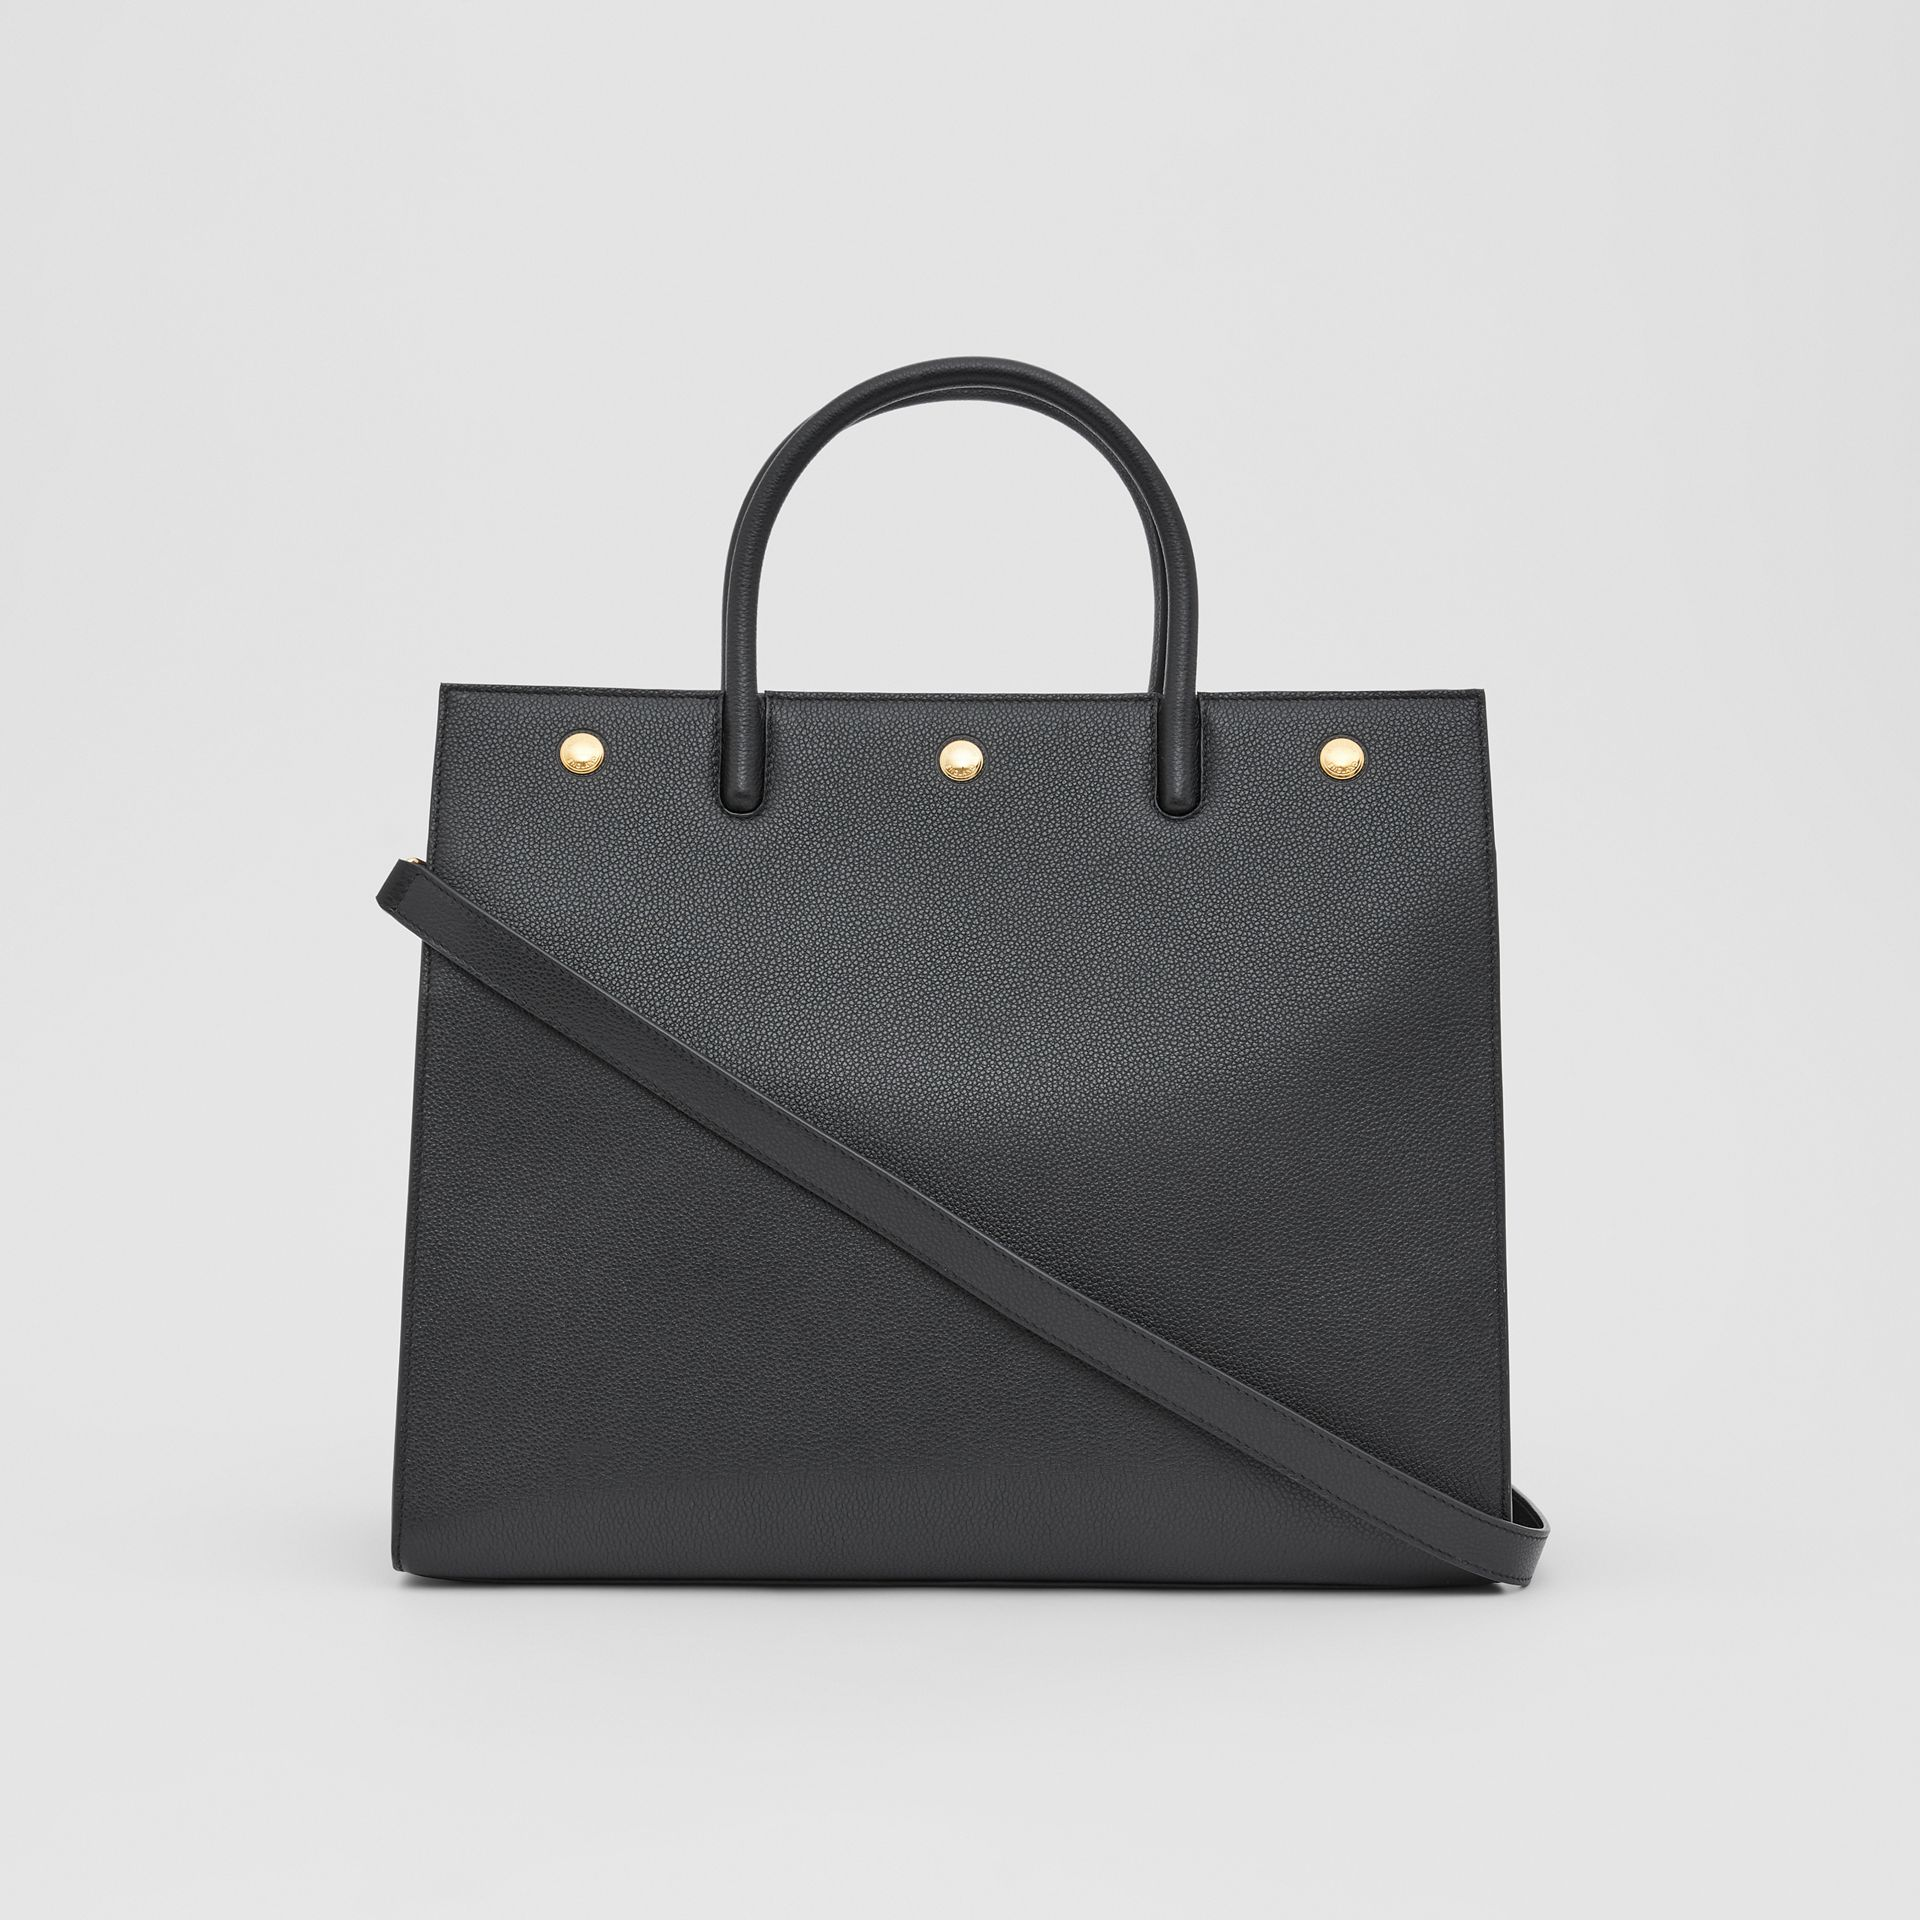 Medium Leather Two-handle Title Bag in Black - Women | Burberry - gallery image 7